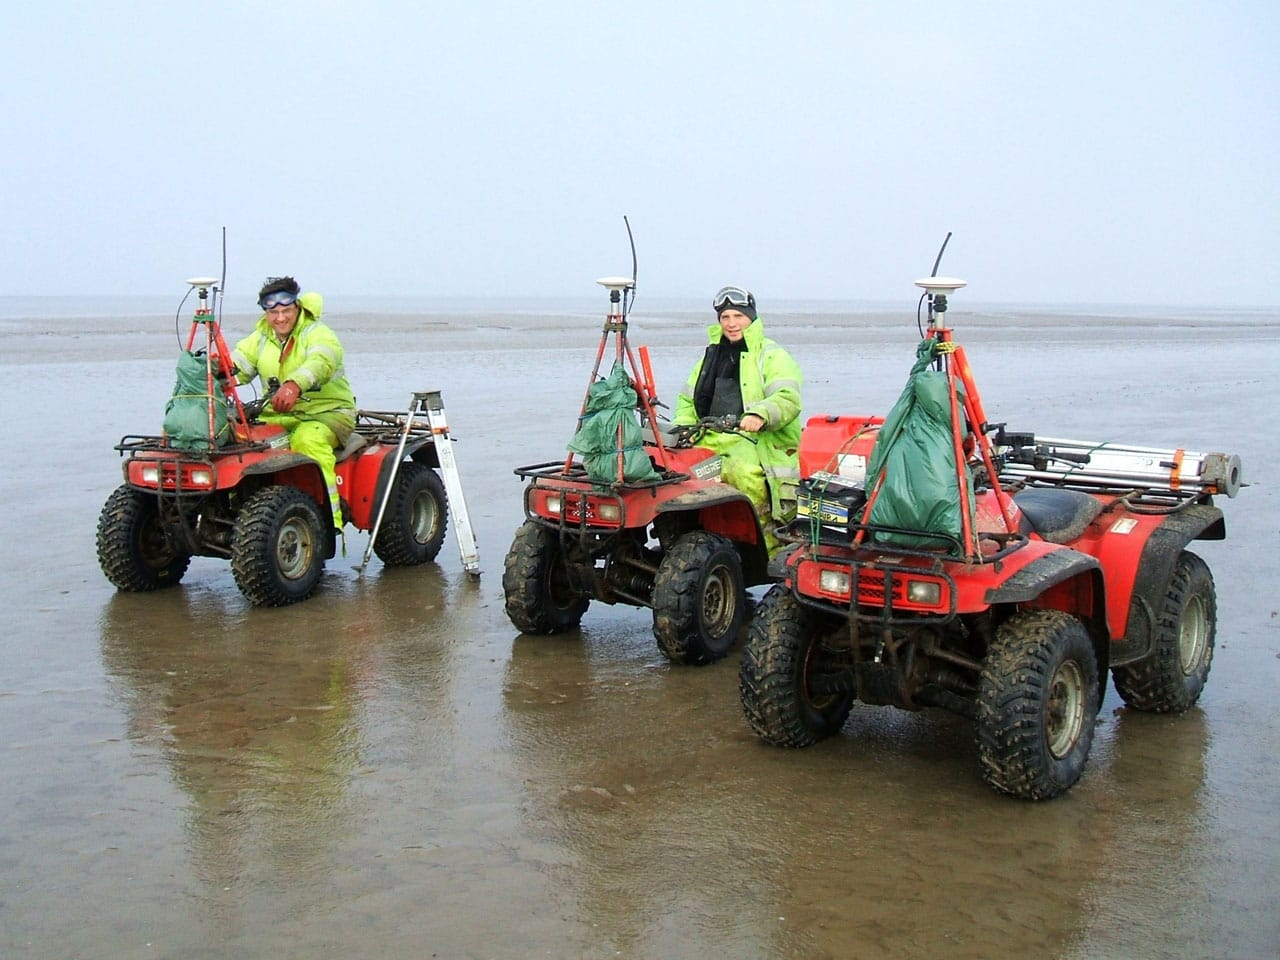 Image of Survey Operations staff on quad bikes.